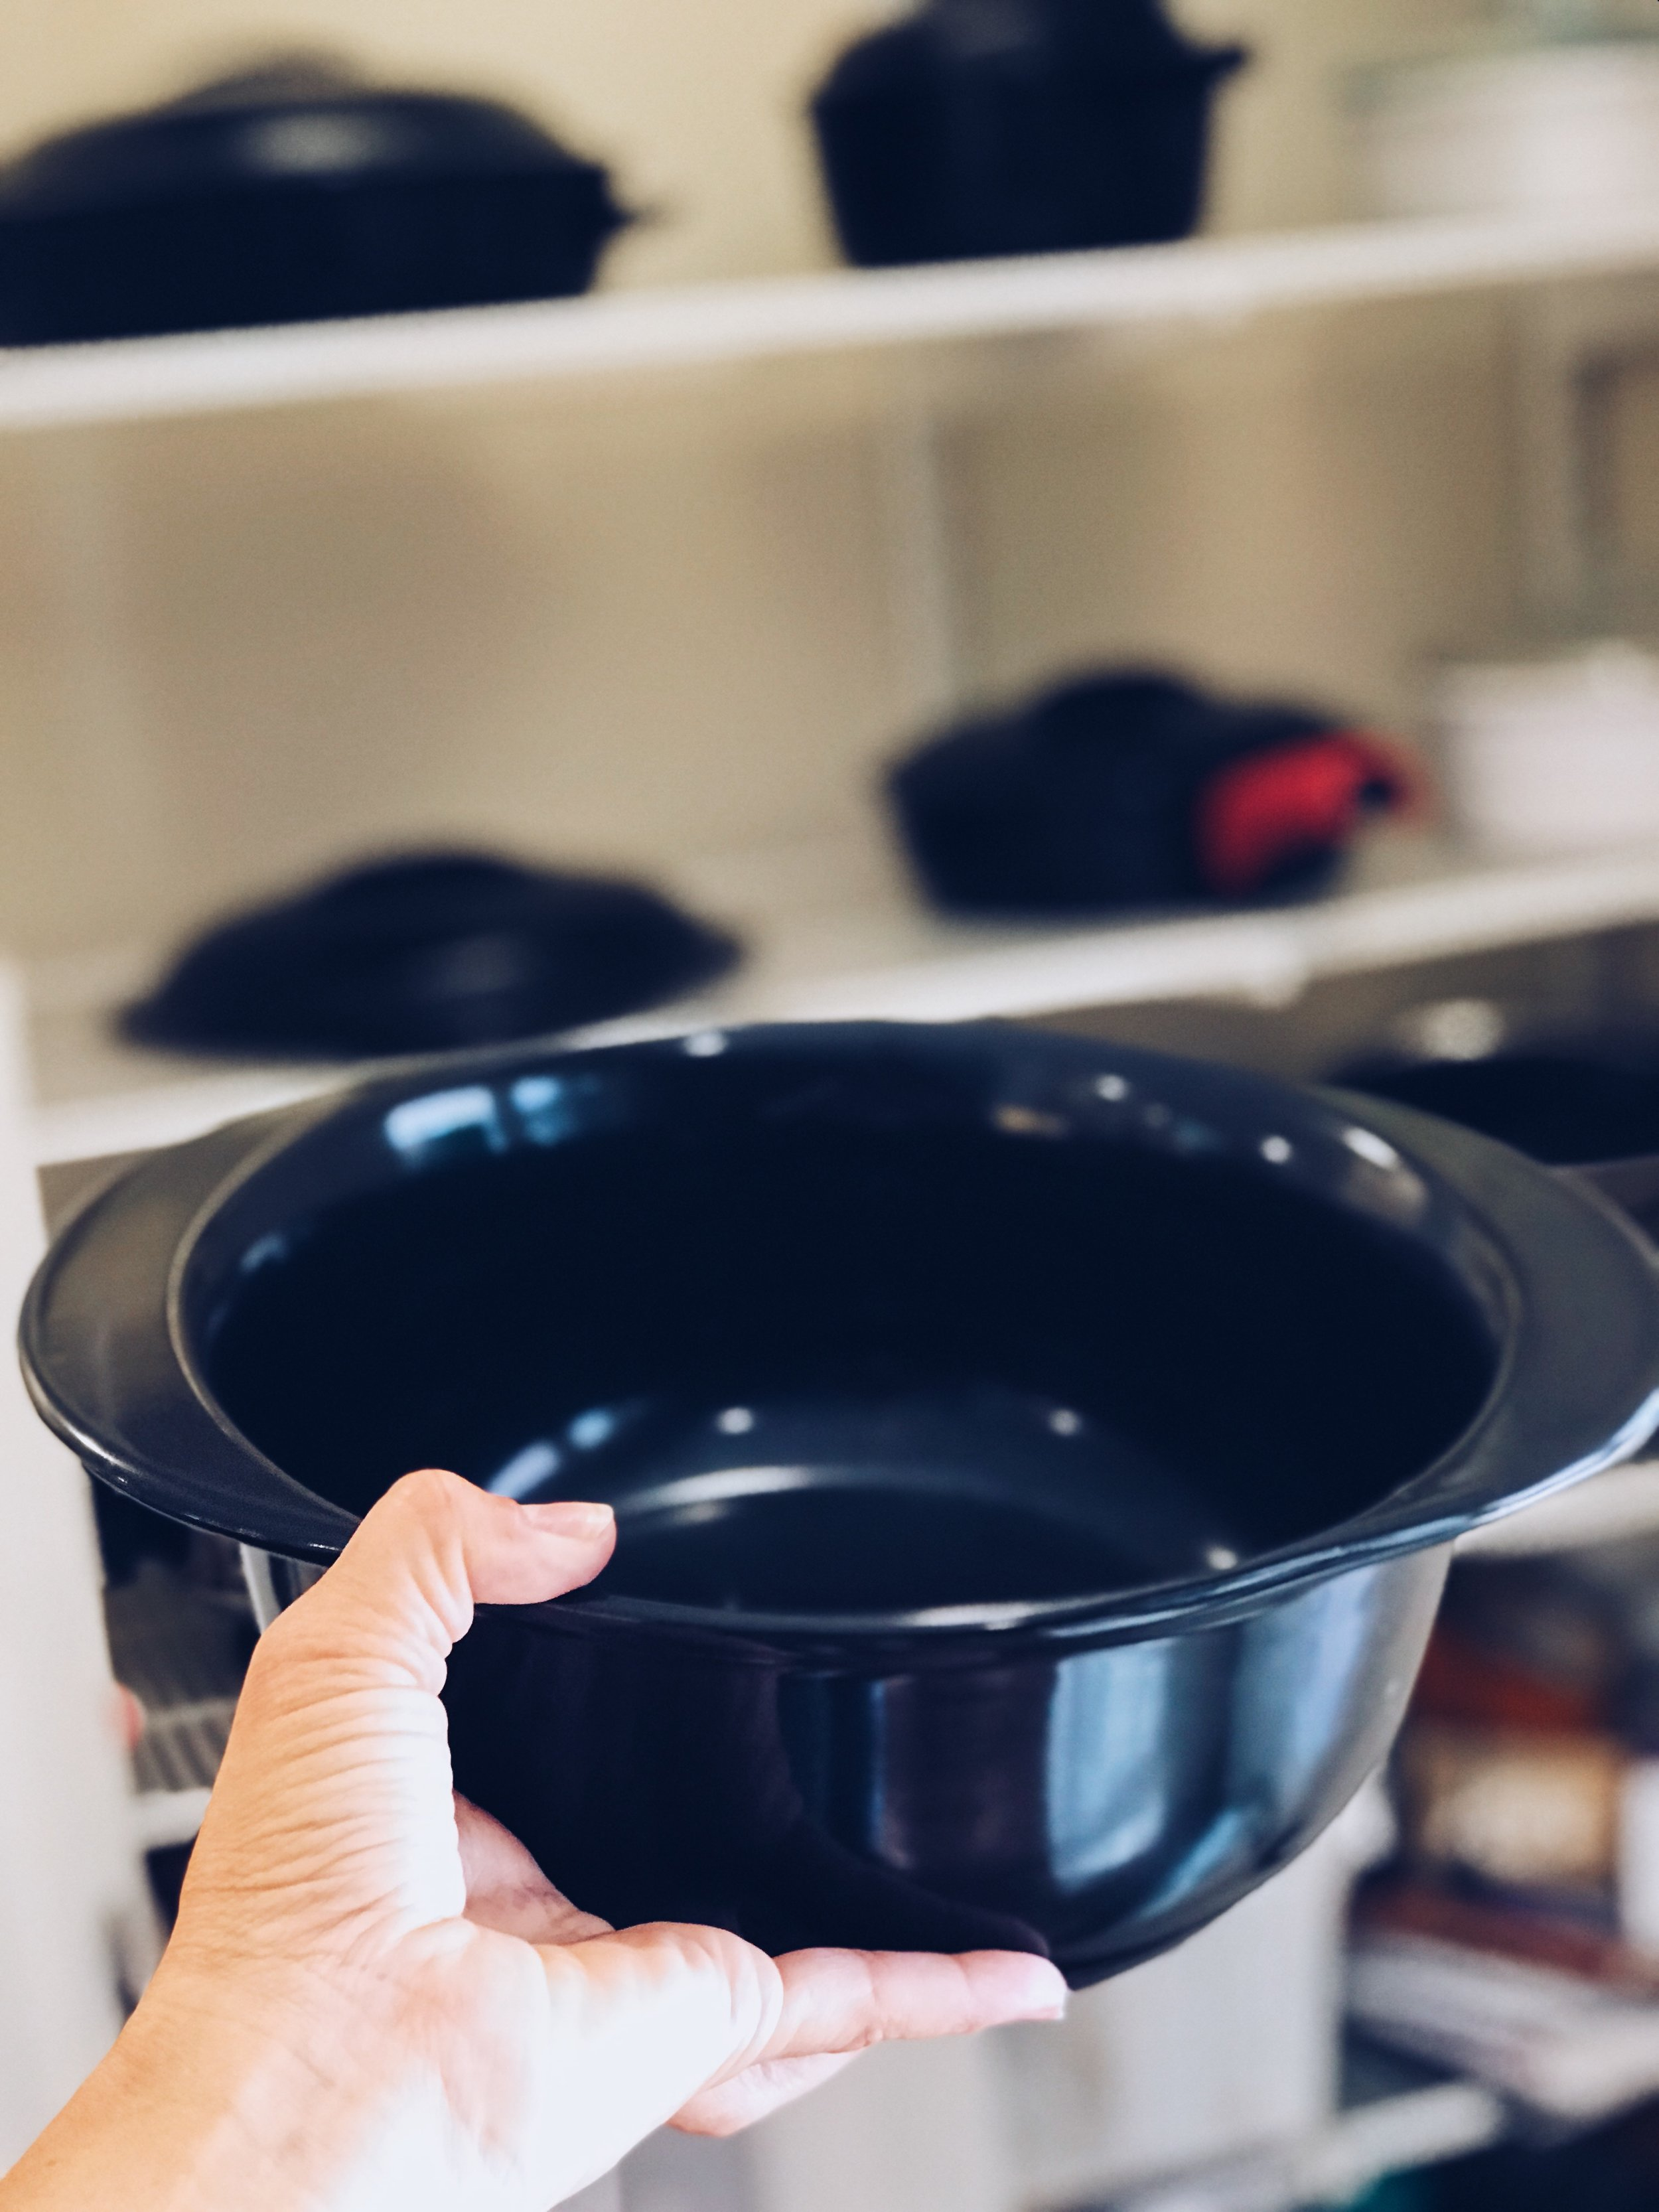 What's Cooking? Making The Switch To Nontoxic Cookware